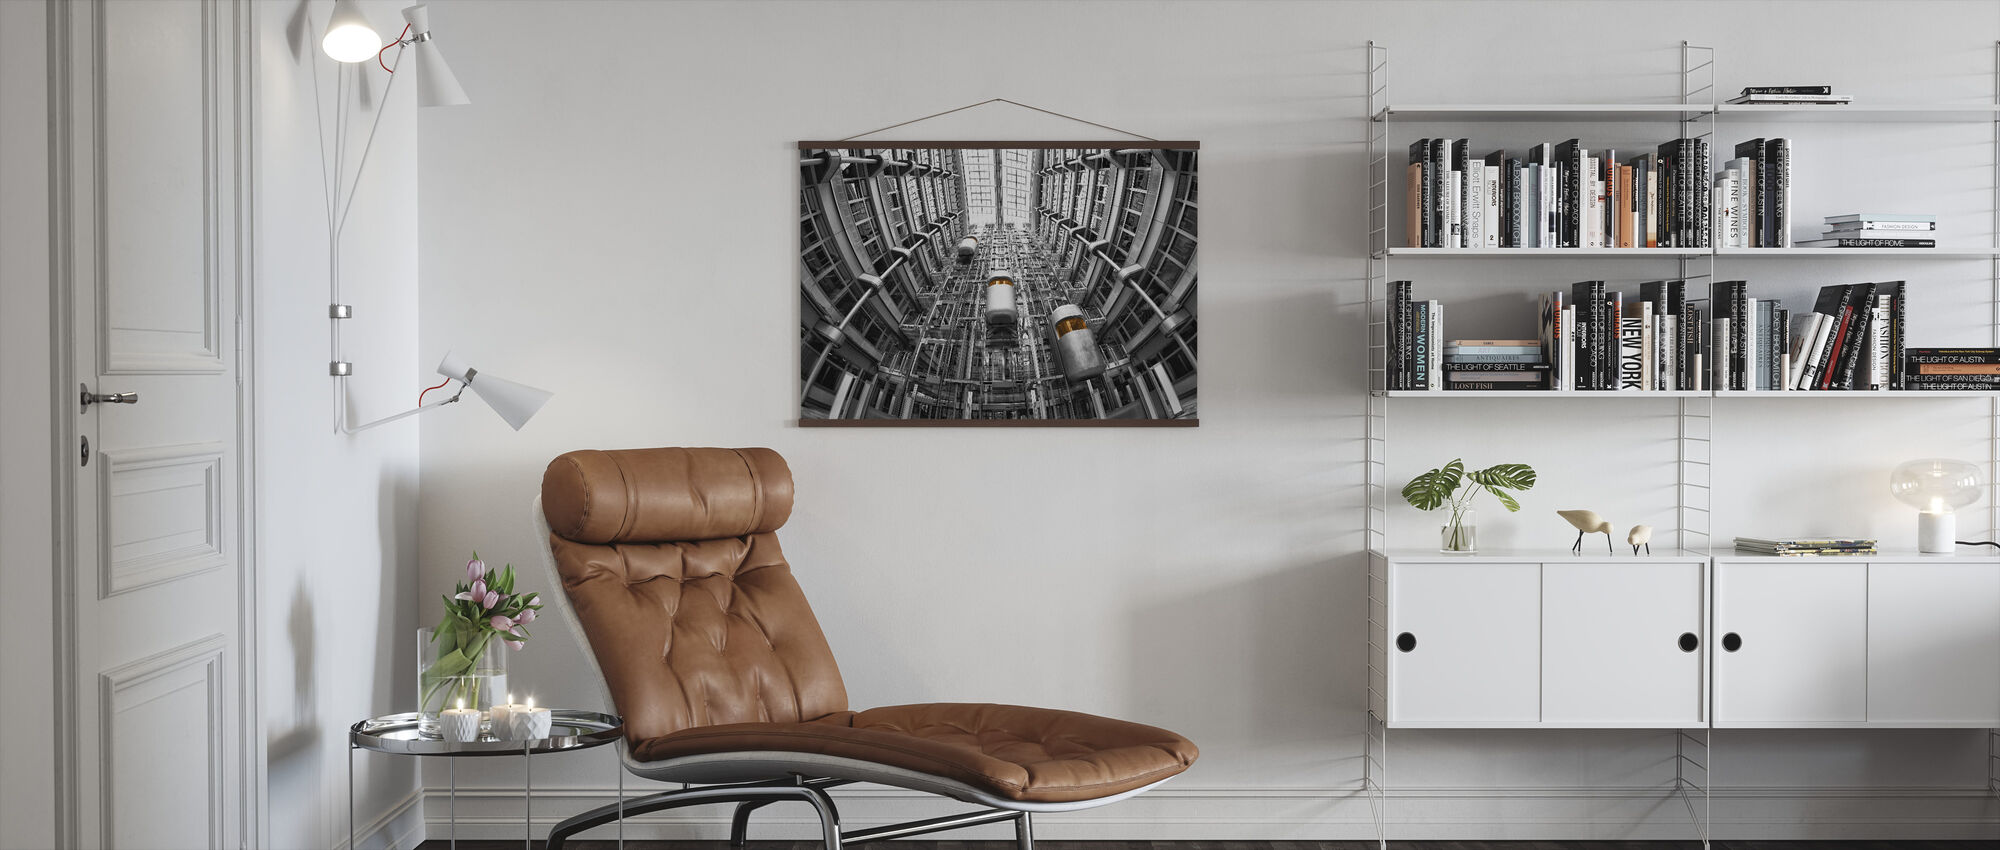 Lifts - Poster - Living Room